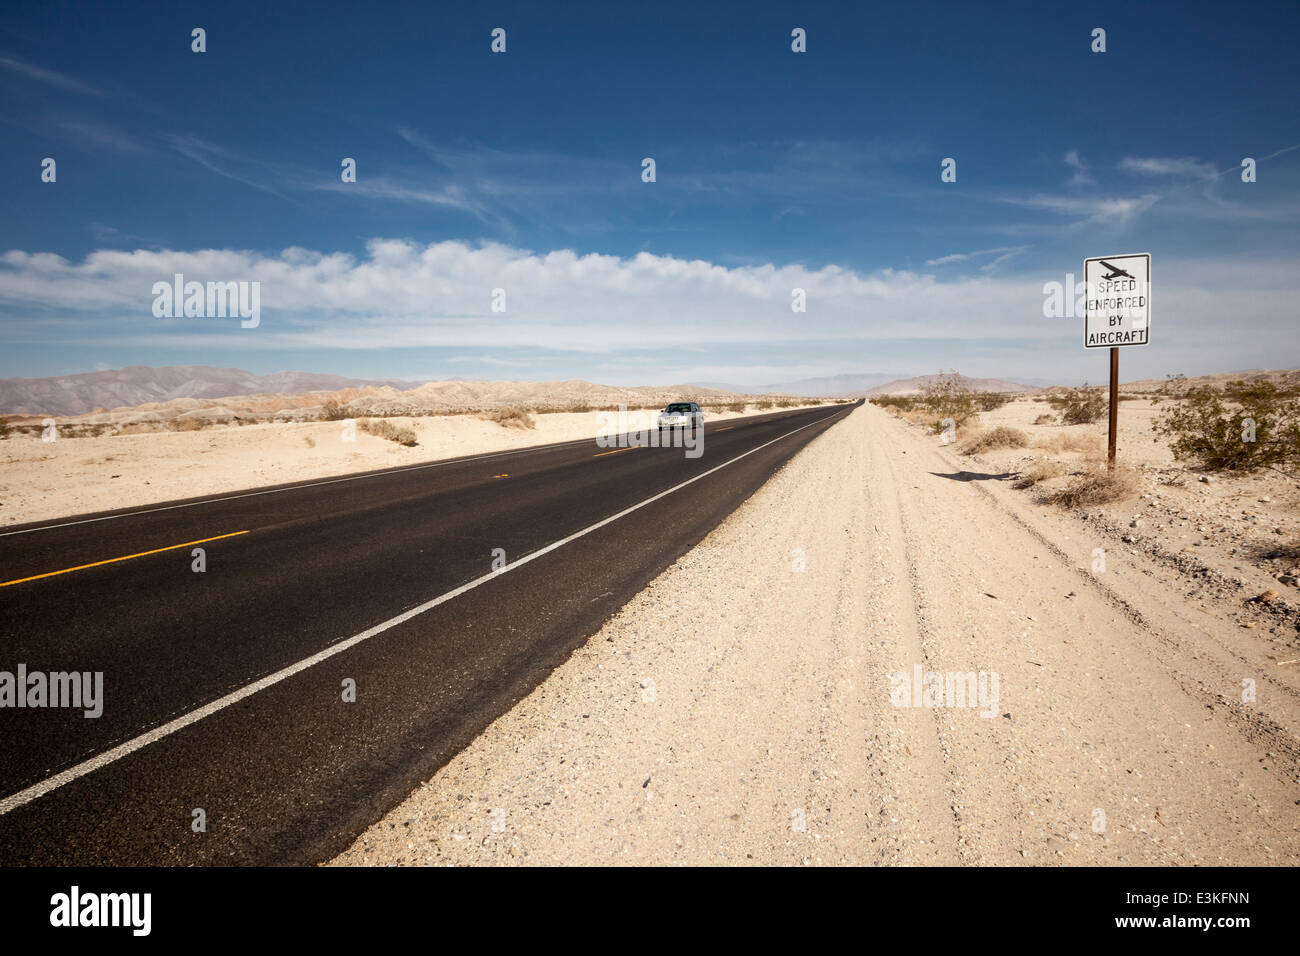 Desert road vanishing point - Stock Image